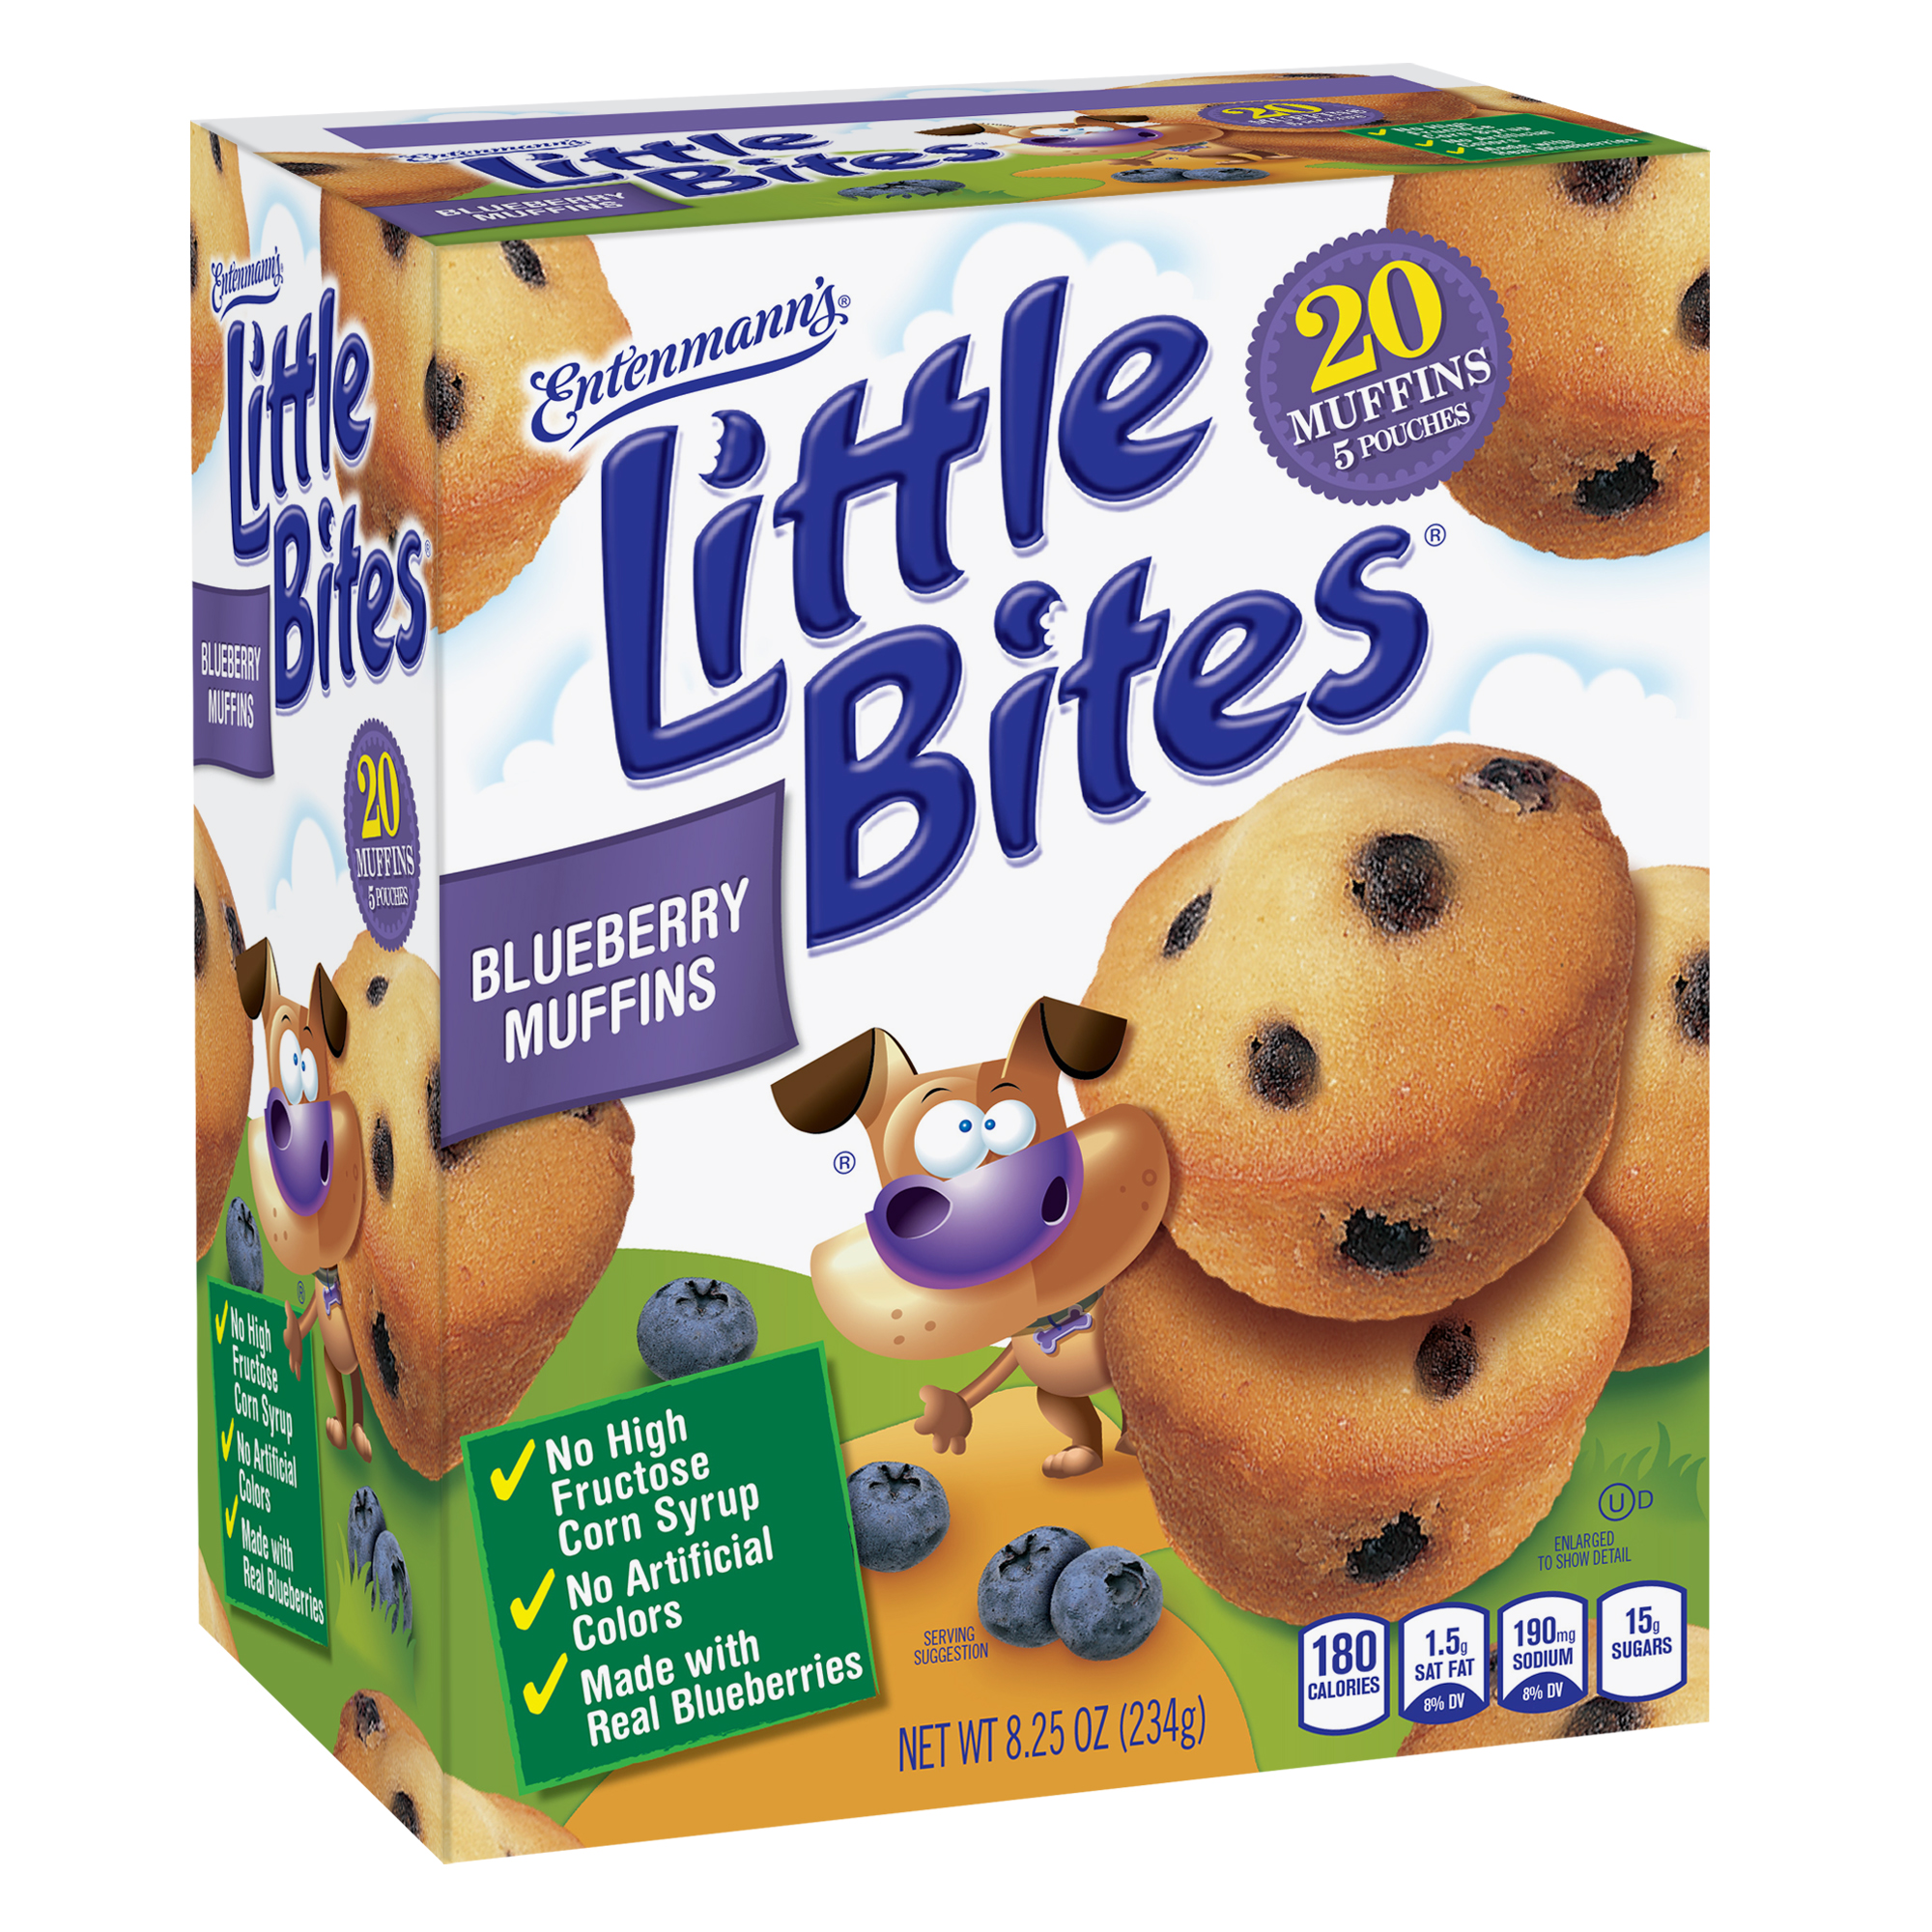 Entenmann's Little Bites Blueberry Muffin 5count